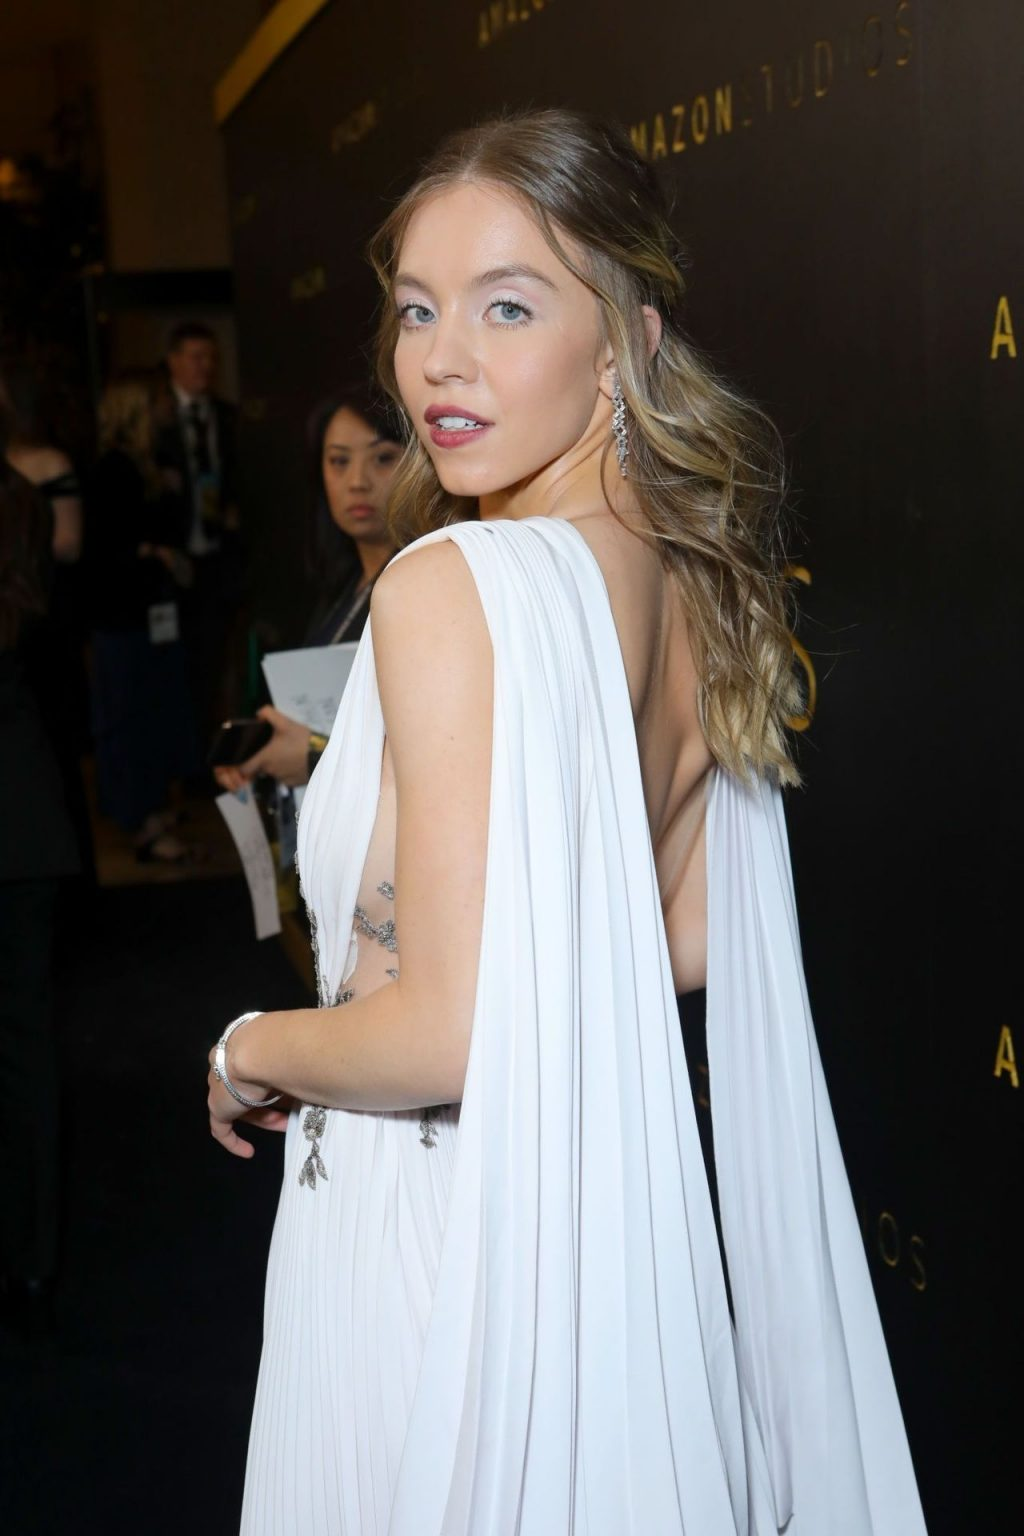 Sydney Sweeney Braless (41 Photos + Video)